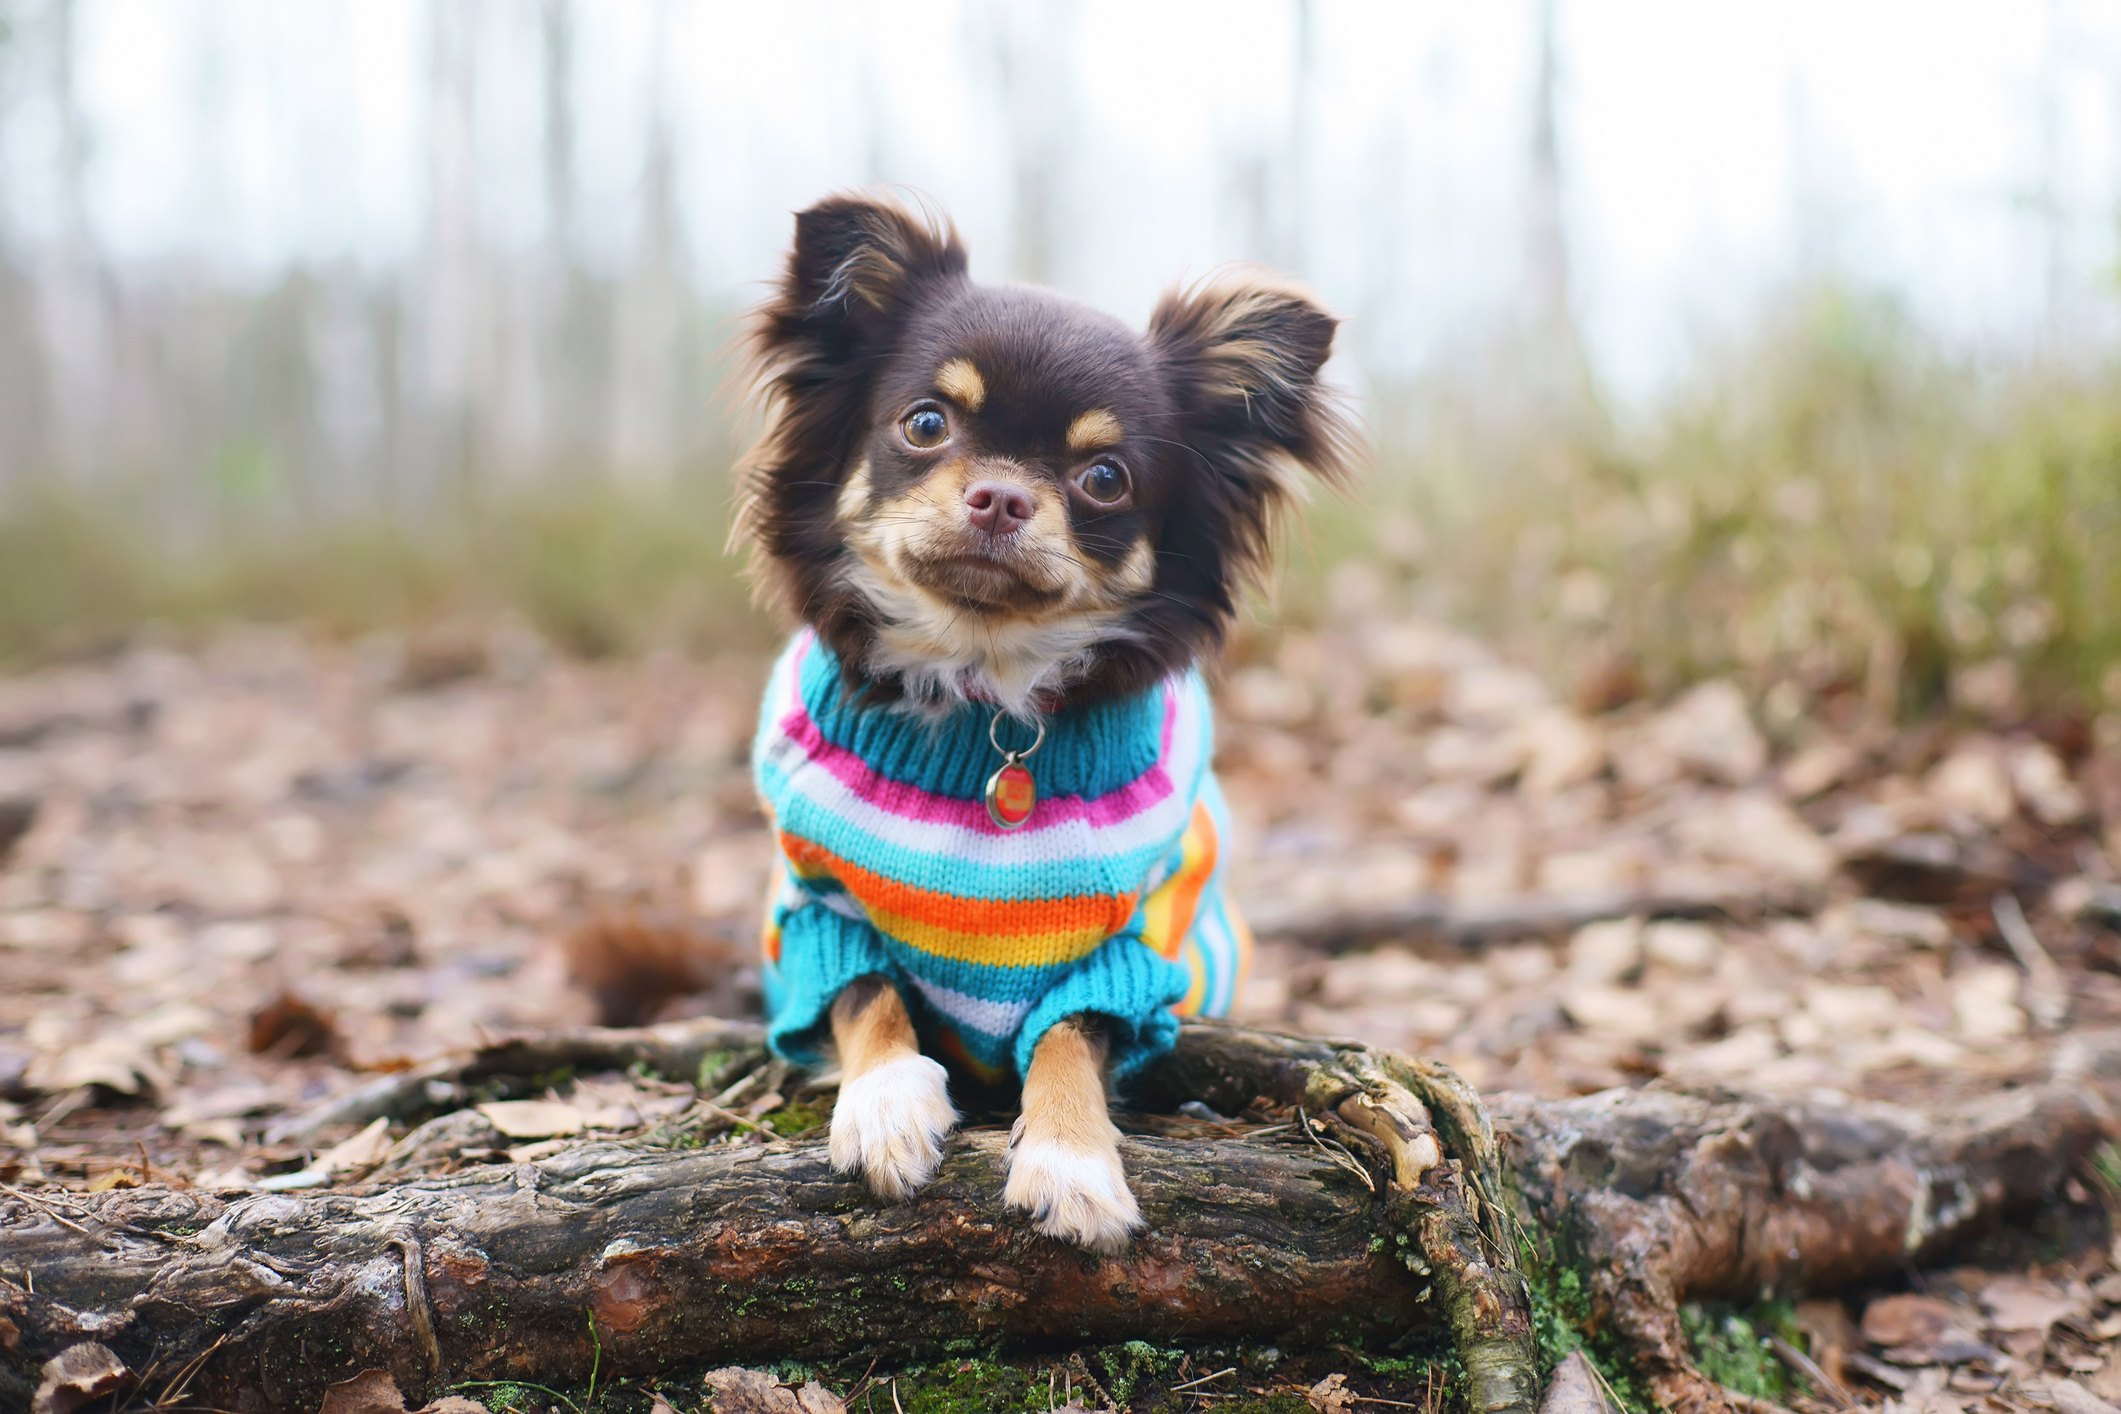 Dog in sweater